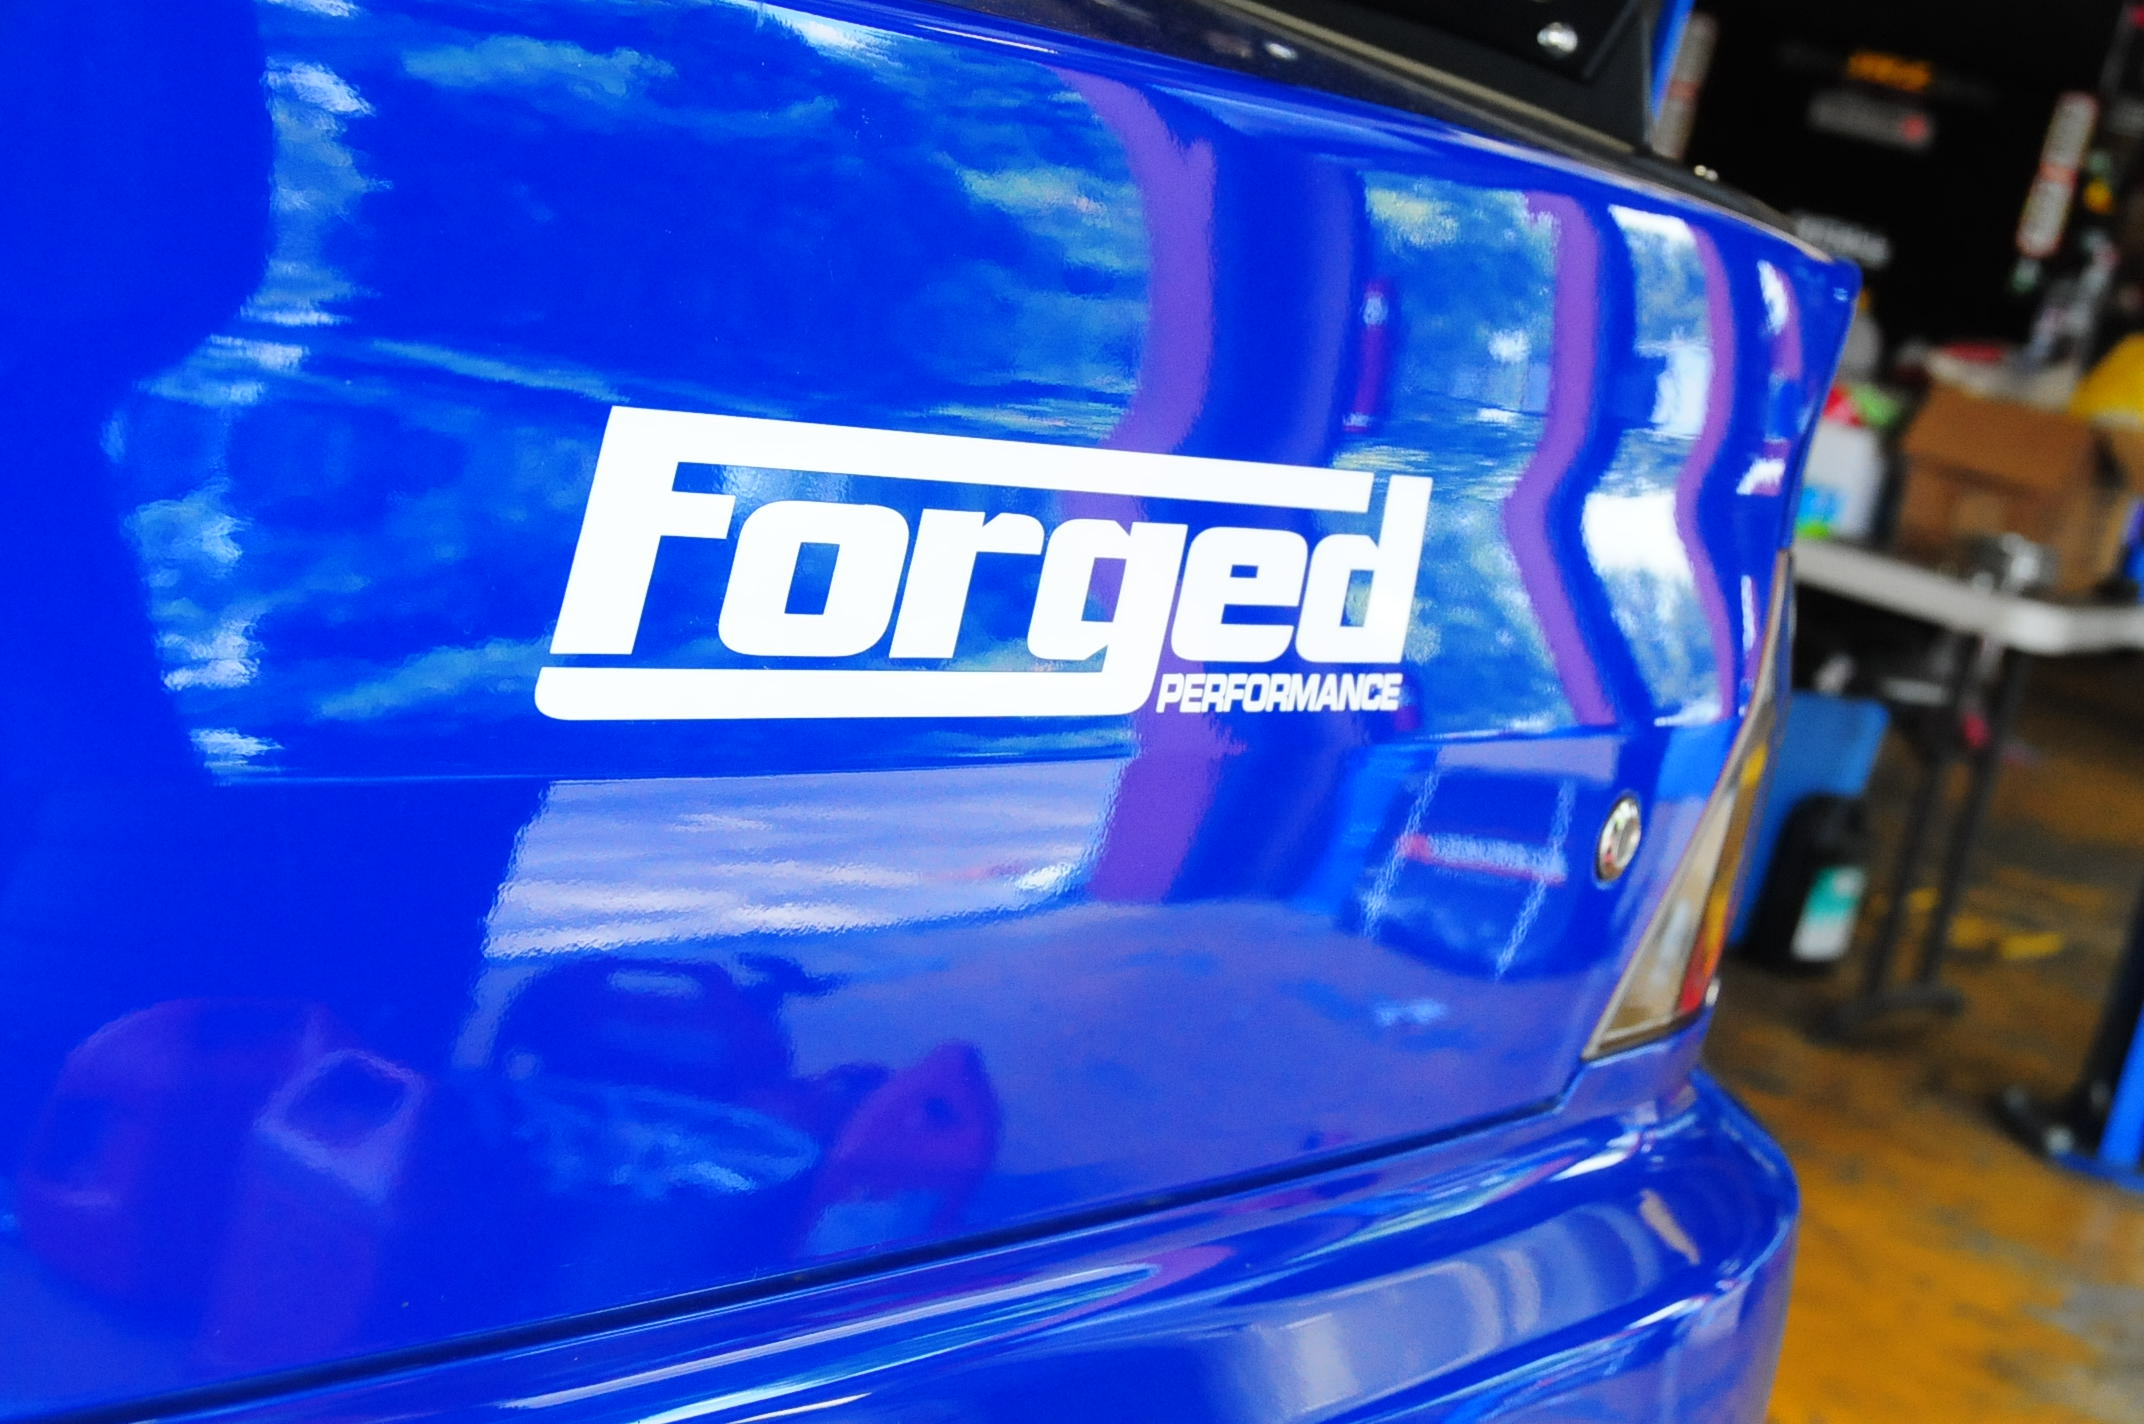 Forged Performance Medium Size Sticker